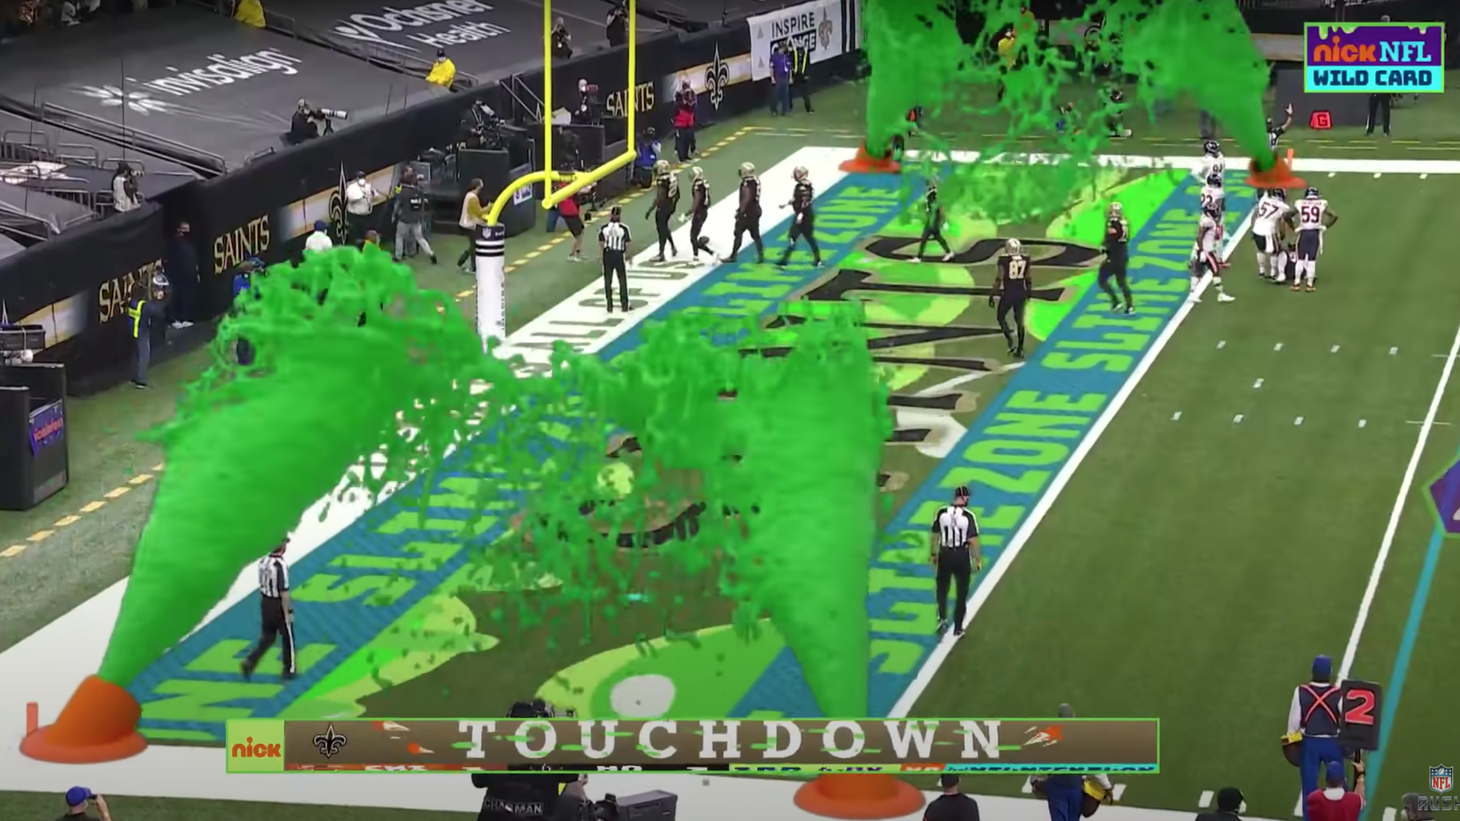 When Nickelodeon put its spin on an NFL game, the end zone became the slime zone.